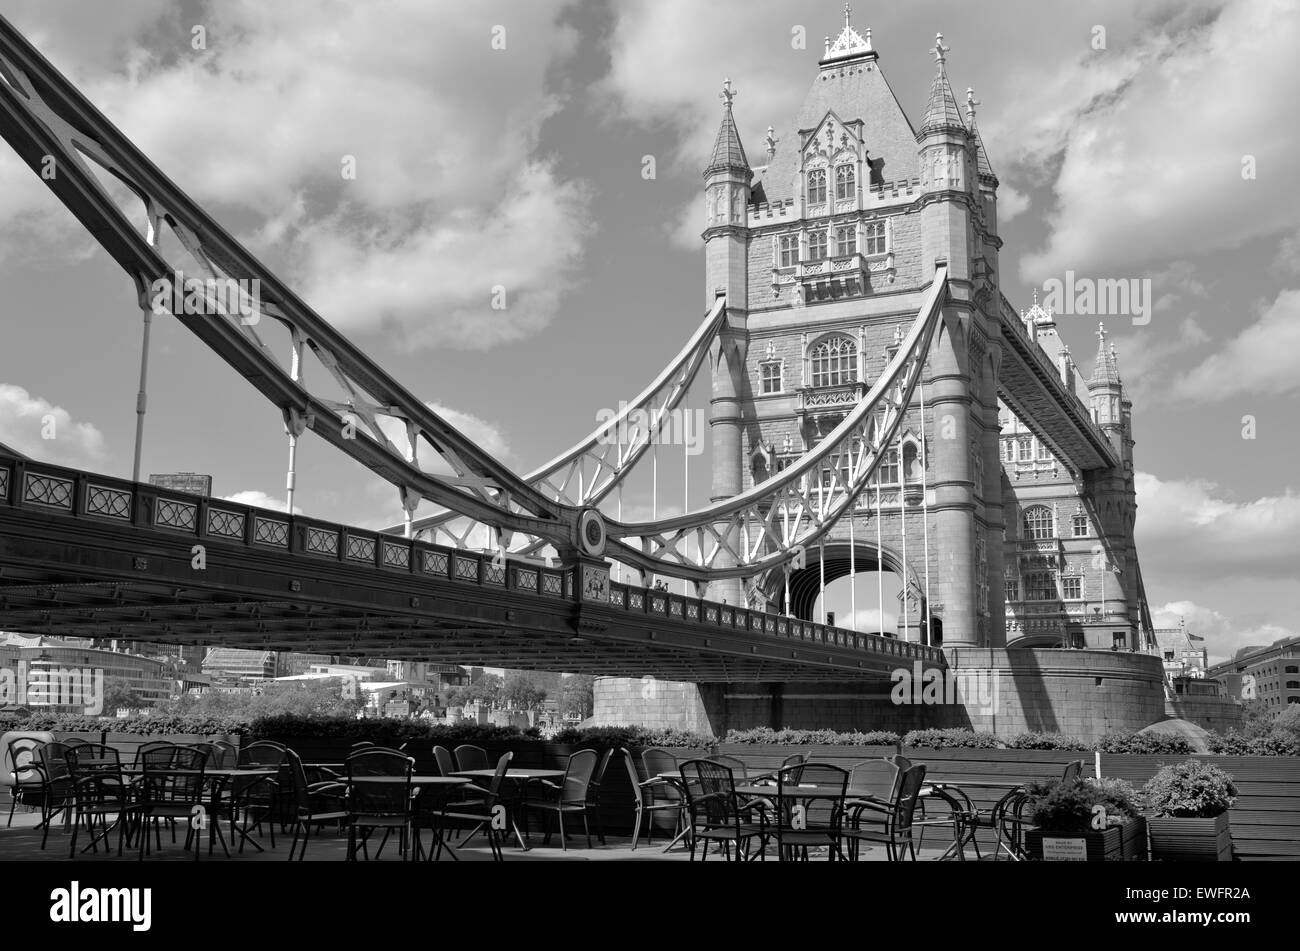 The Tower Bridge spanning over River Thames as view from the south bank in London, UK. (BW) - Stock Image